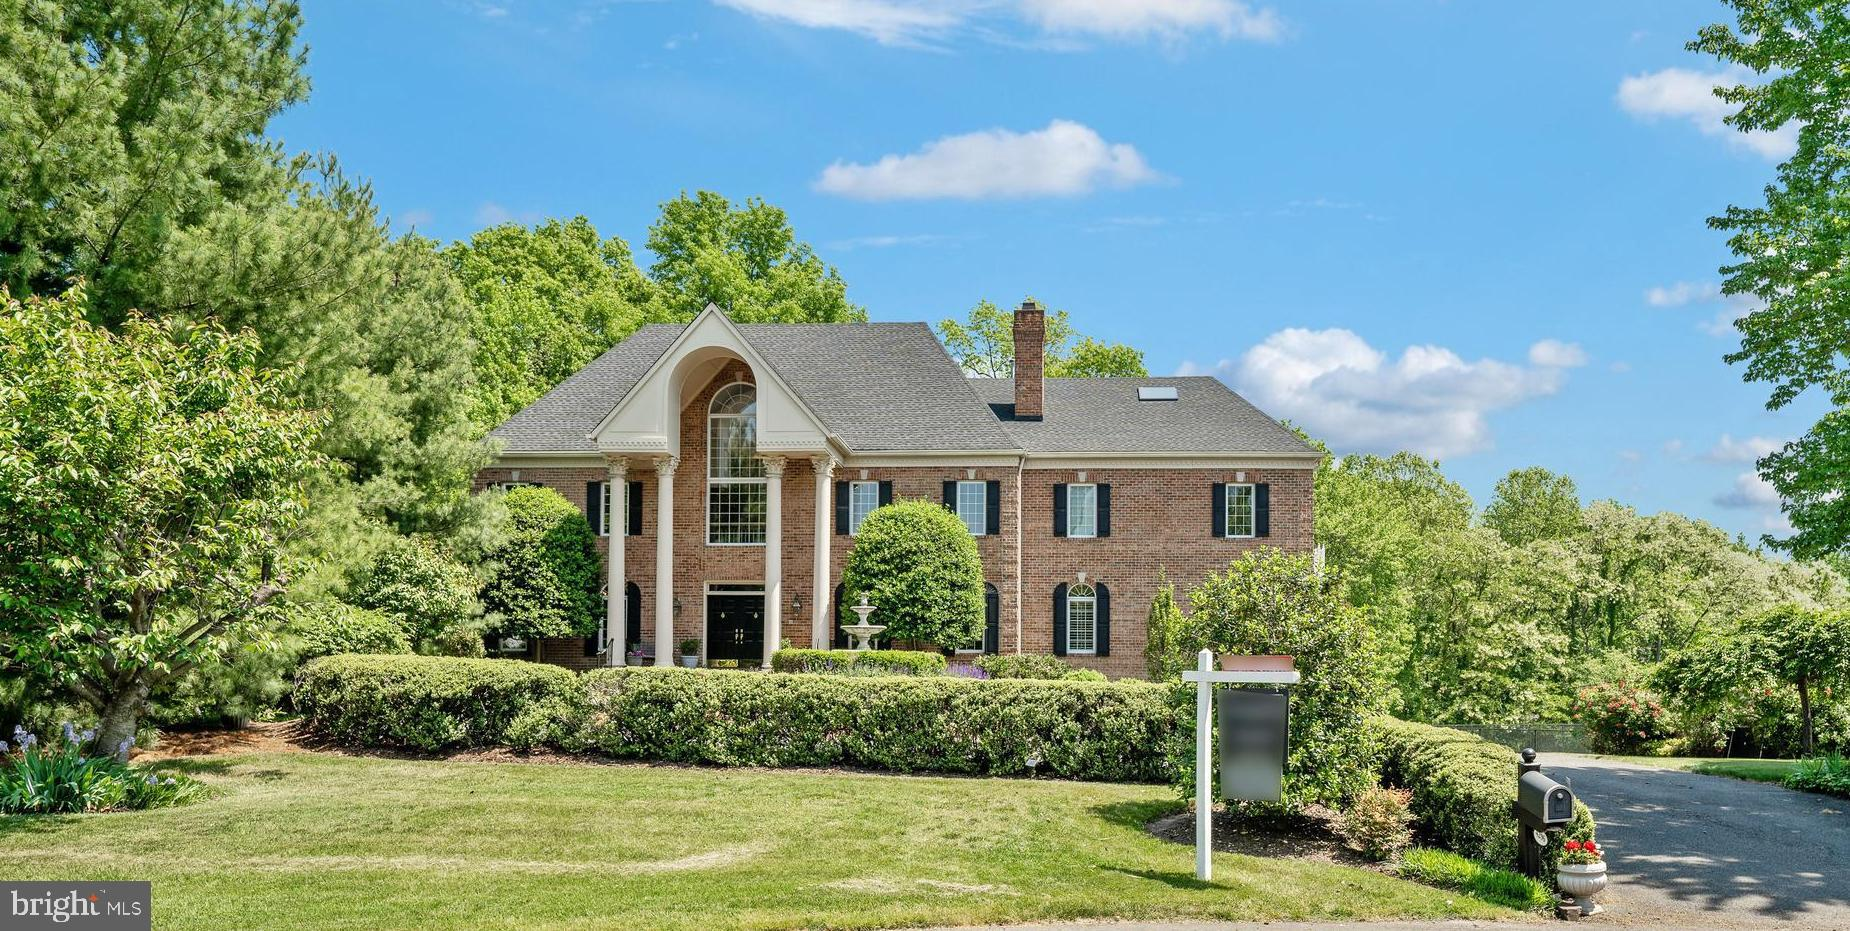 Truly spectacular estate in premier setting near the river in prestigious Oxford on the Potomac. Custom home capitalizes on its location with soaring high ceilings, glass walls and multi-level decks designed to capture sweeping views of the river adjoining wooded areas. Special features include: multi-story entry foyer, grand room sizes, elegant interior finishes, elevator, truly breathtaking master suite with dramatic river views, and his & hers private baths. Nothing was spared in creating this unique, one of a kind masterpiece!